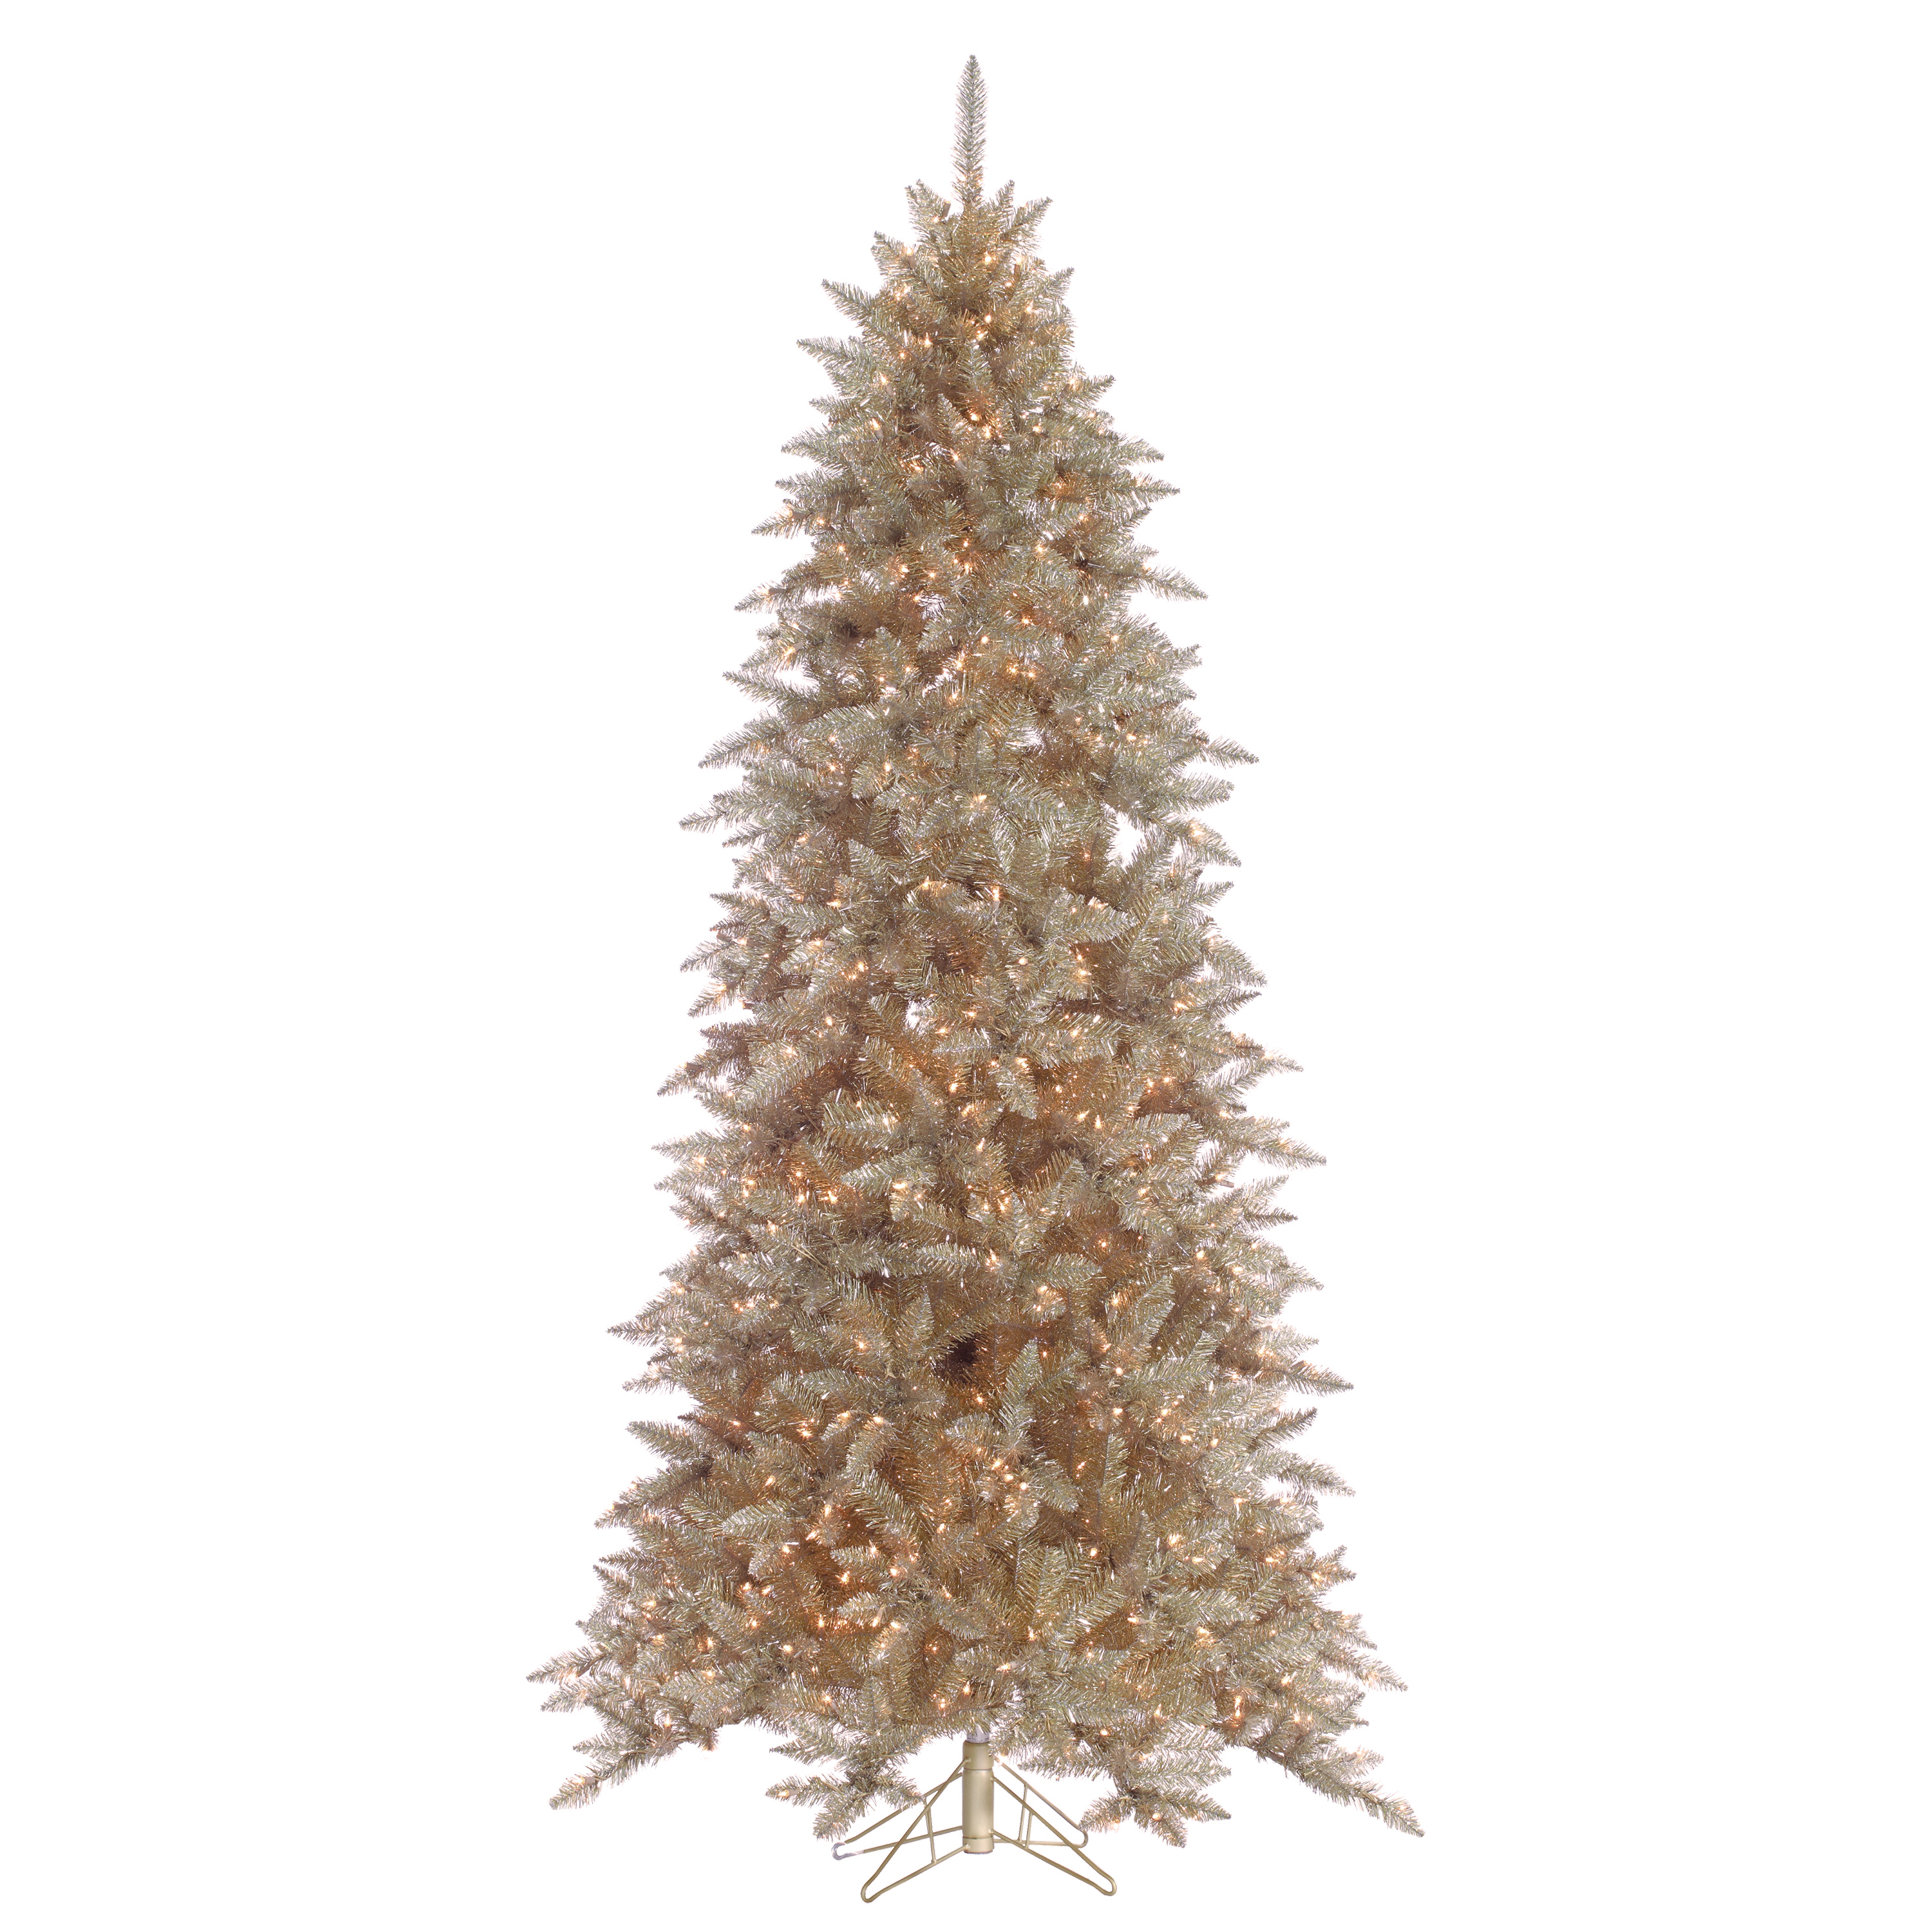 Gerson 7.5 Layered Platinum frasier Fir with 700 Clear Lights